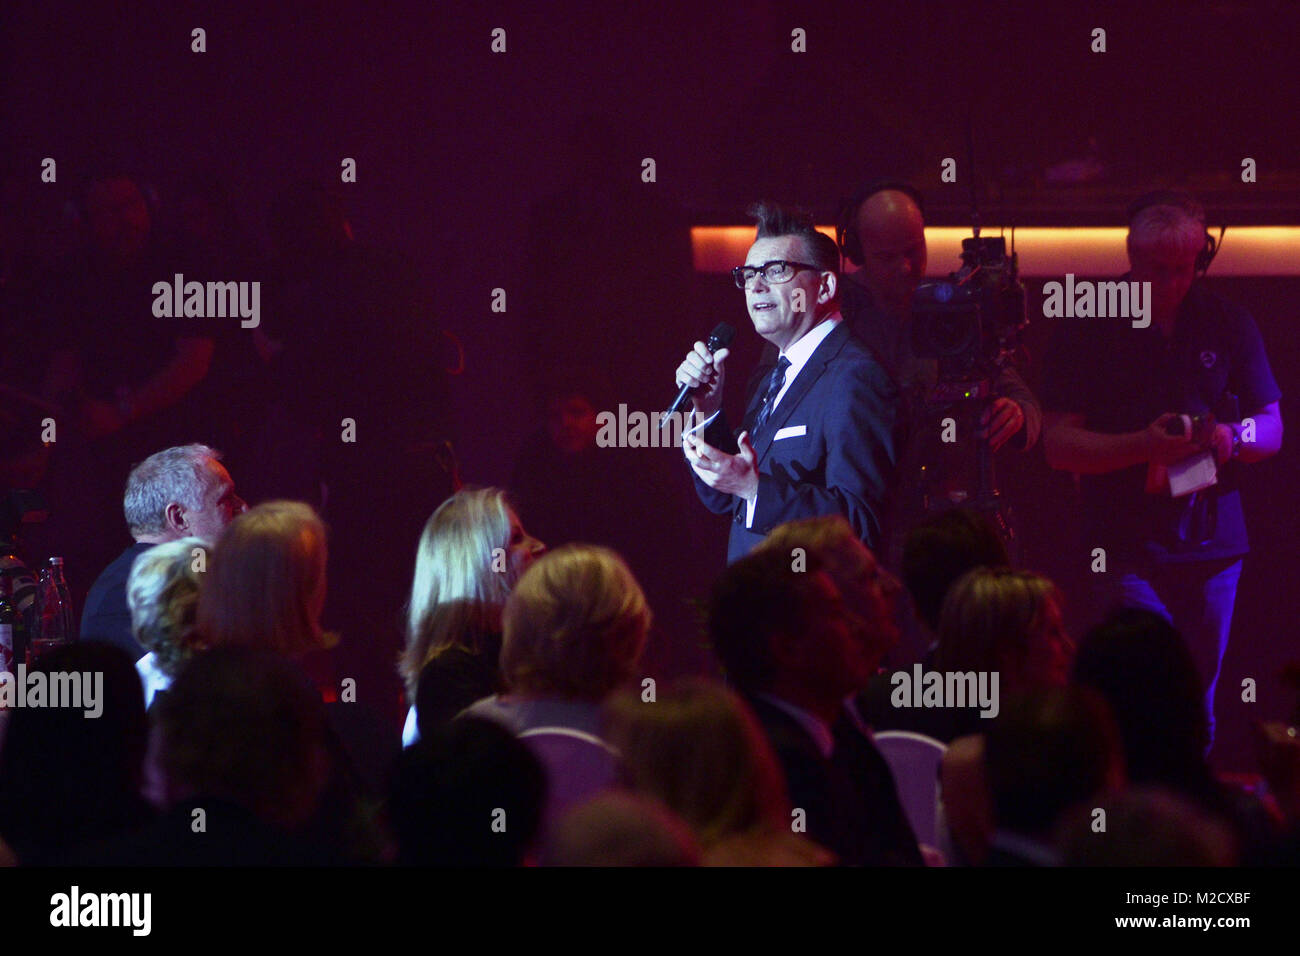 Roter Teppich Frankfurt Prg Lea Live Entertainment Award Stock Photos And Prg Lea